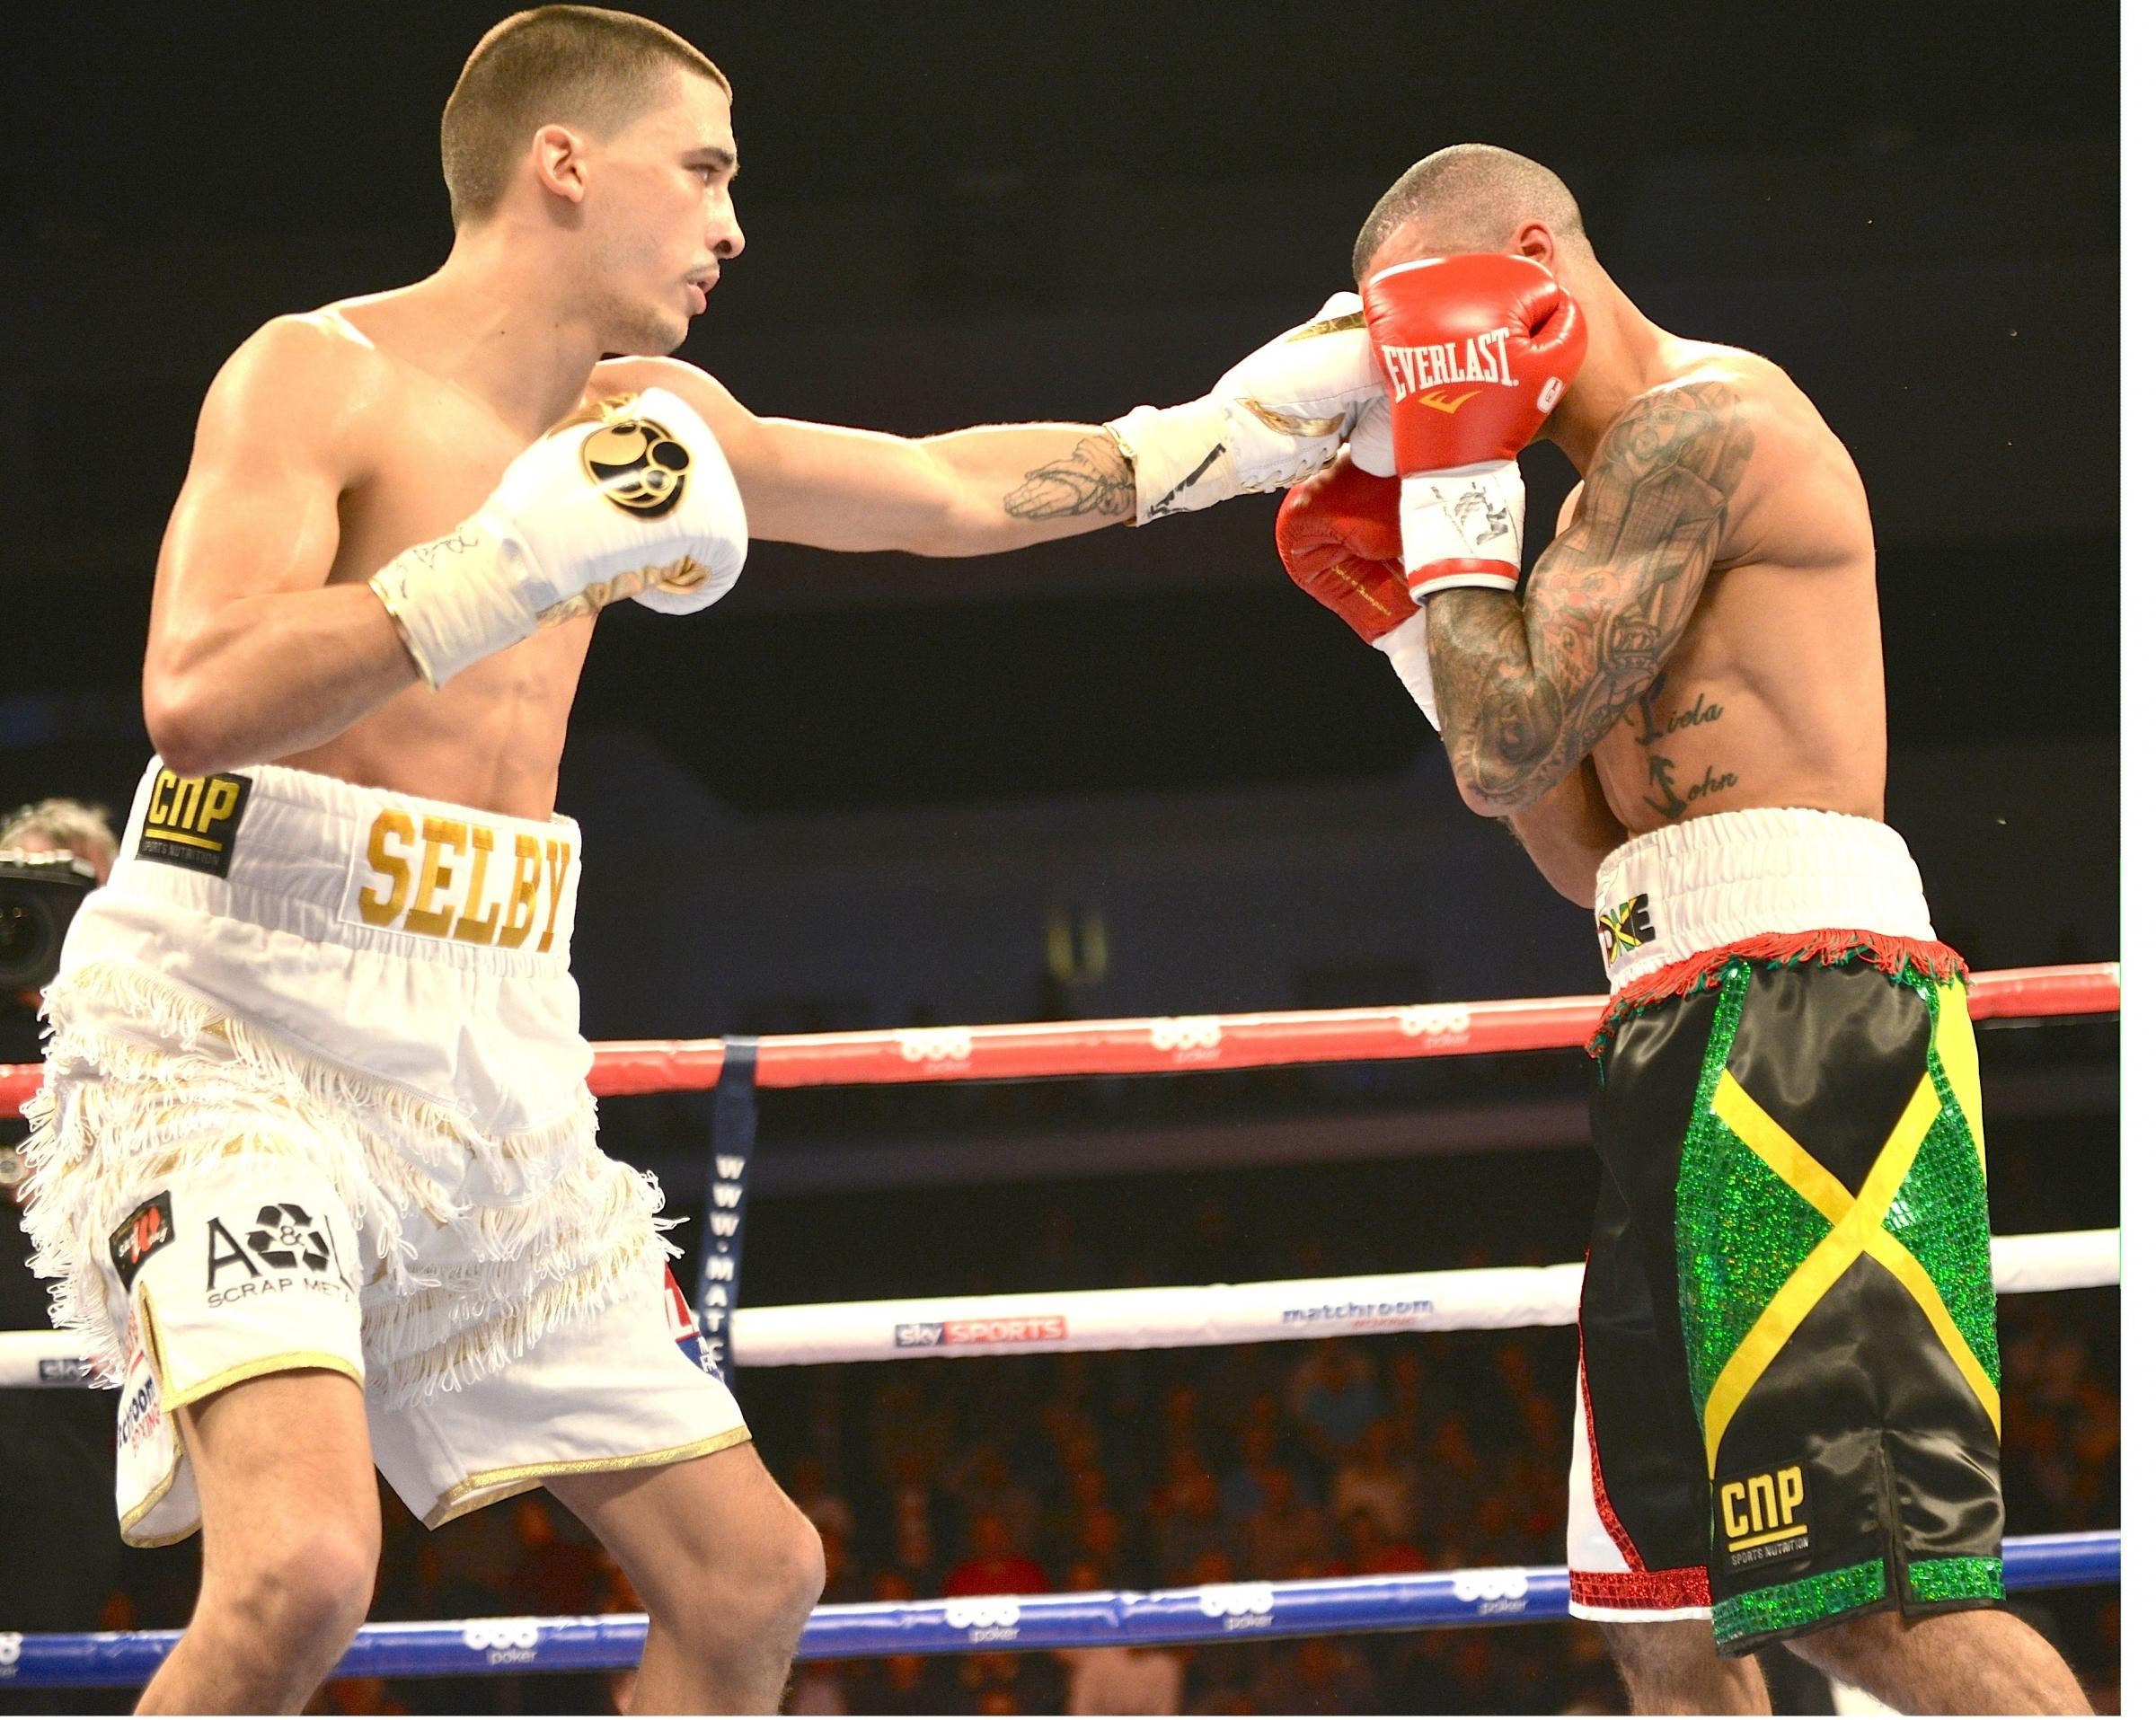 Selby has sights on world title following European victory